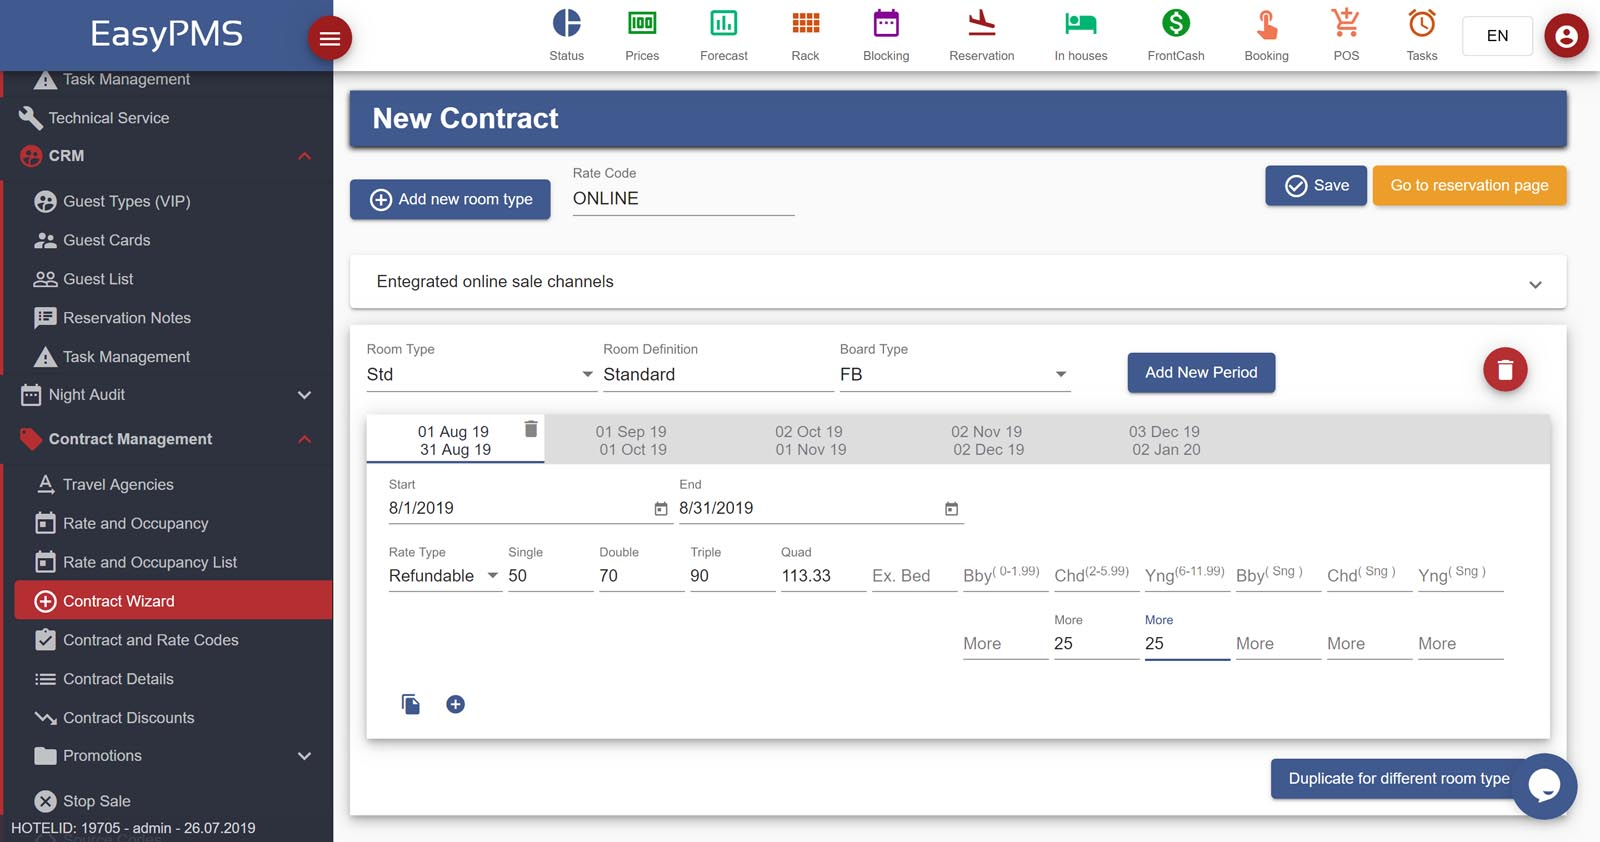 easypms hotel software contract wizard